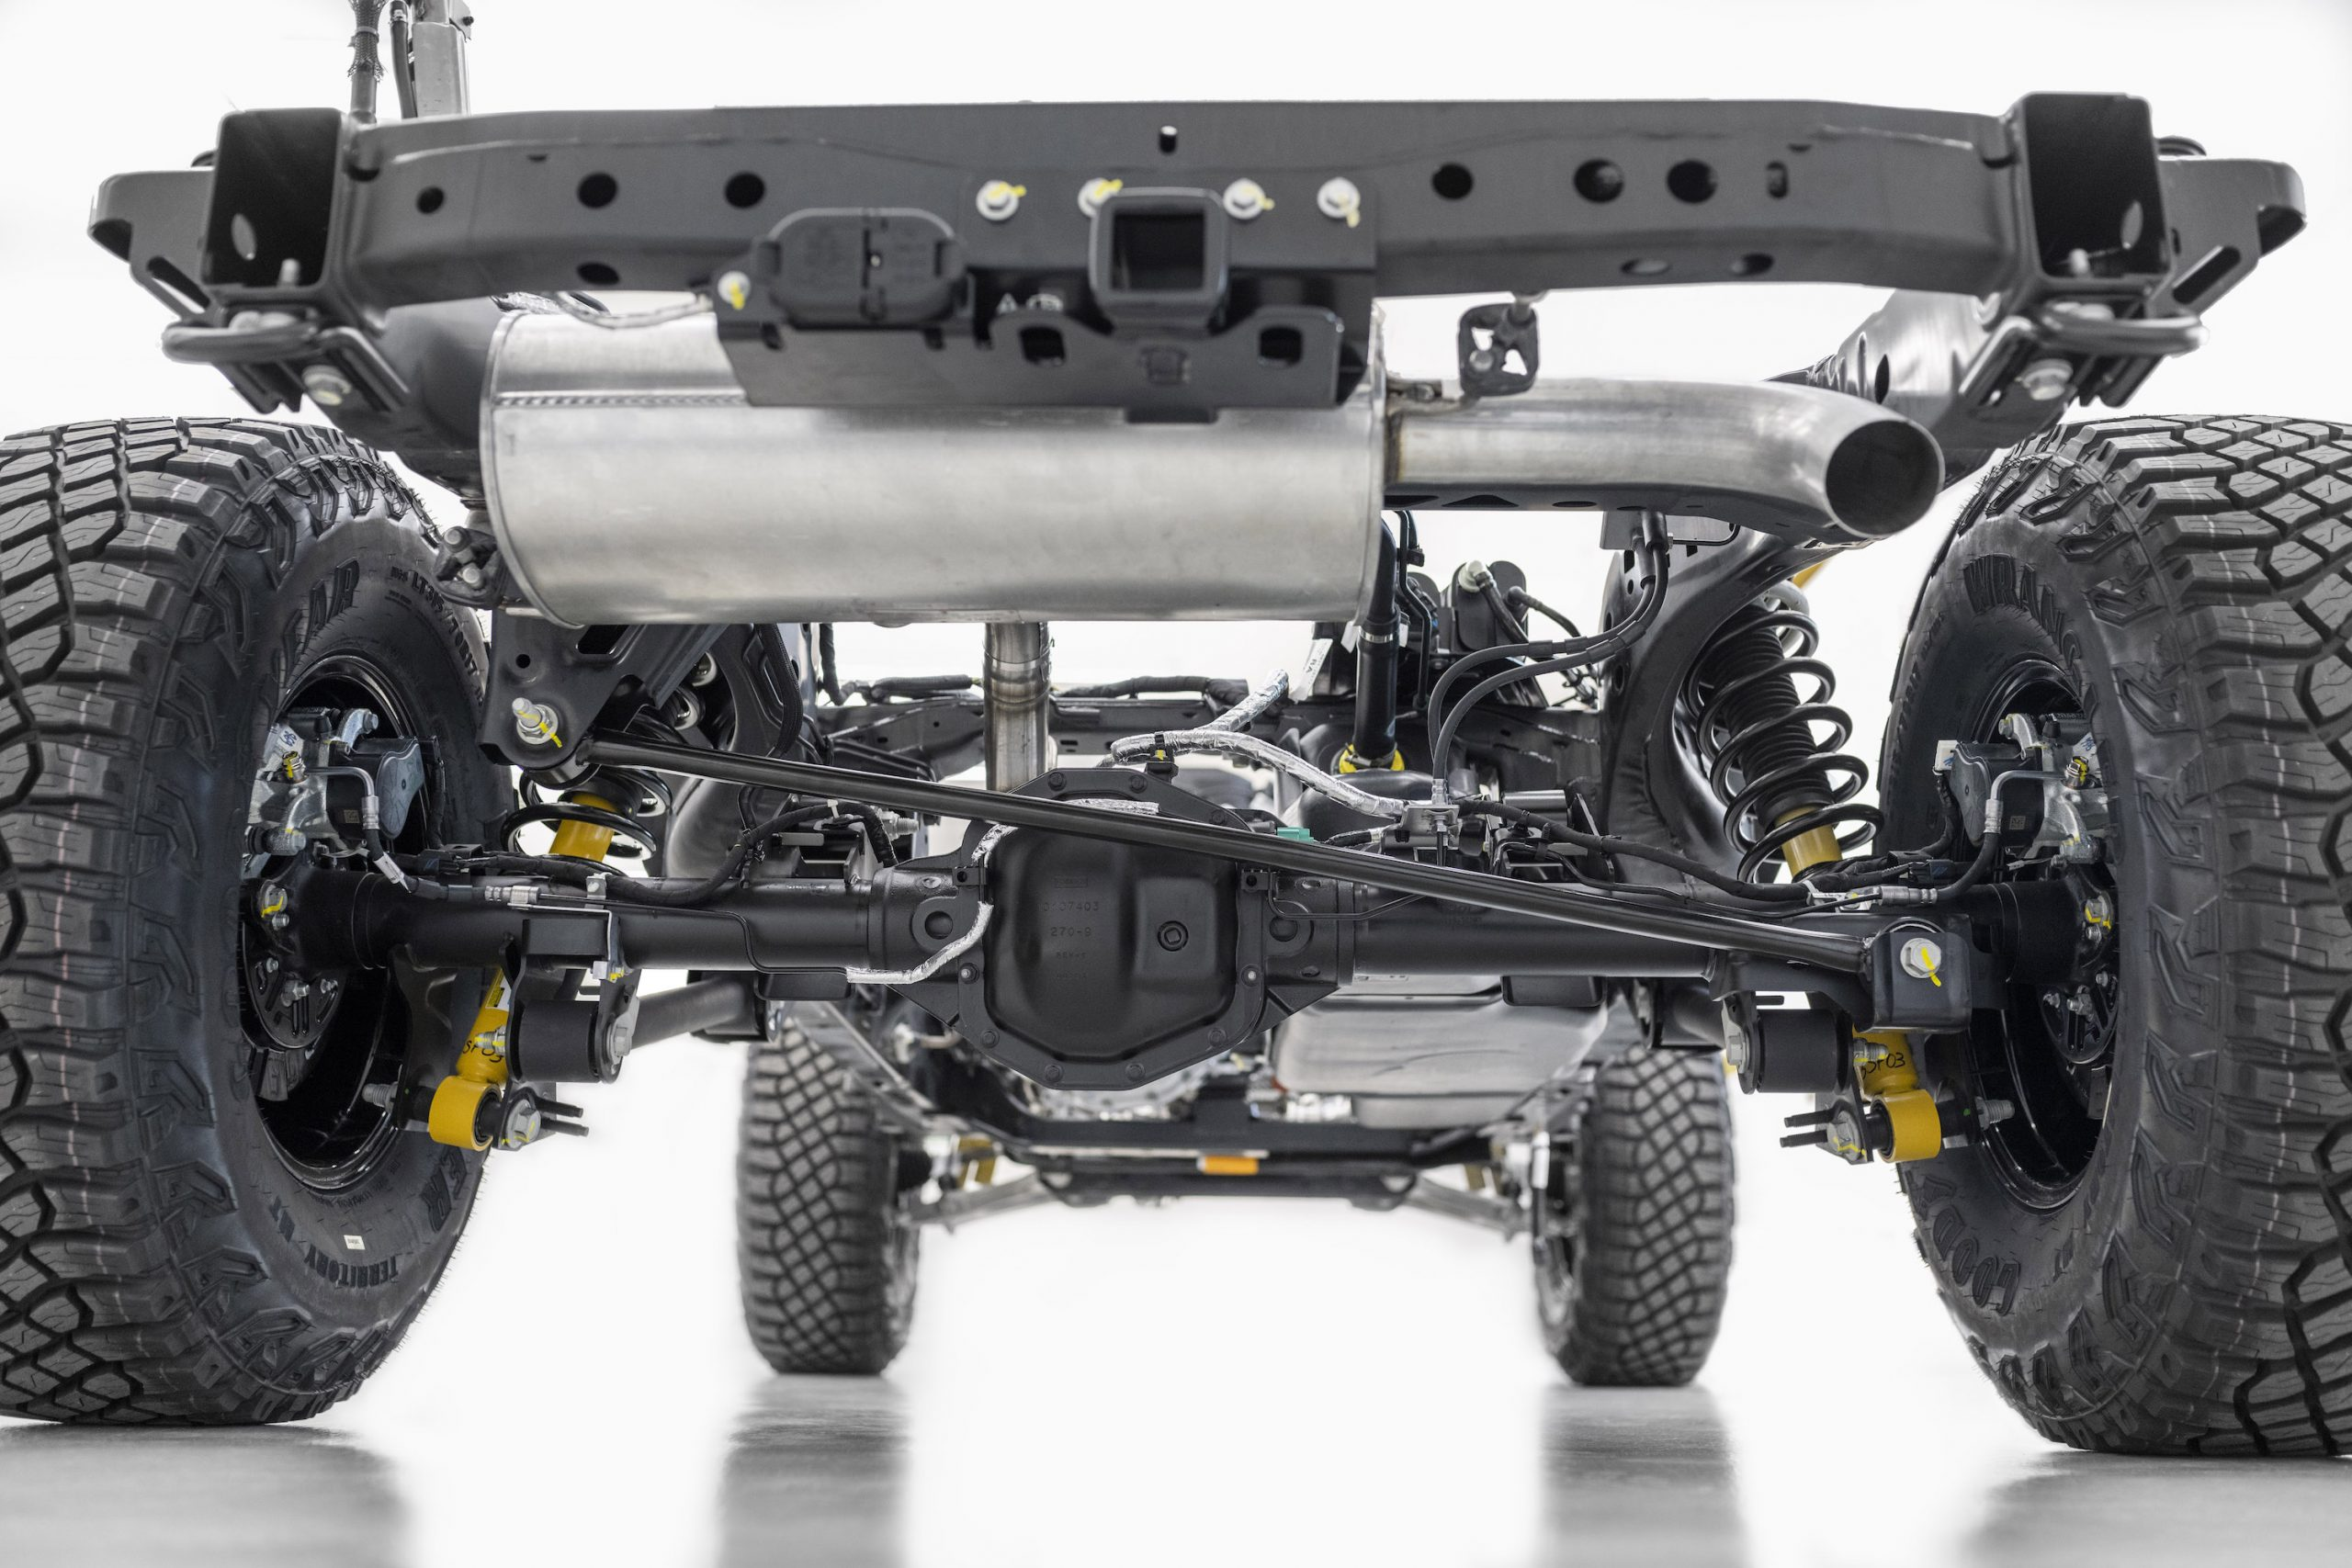 2021 Ford Bronco Chassis Rear